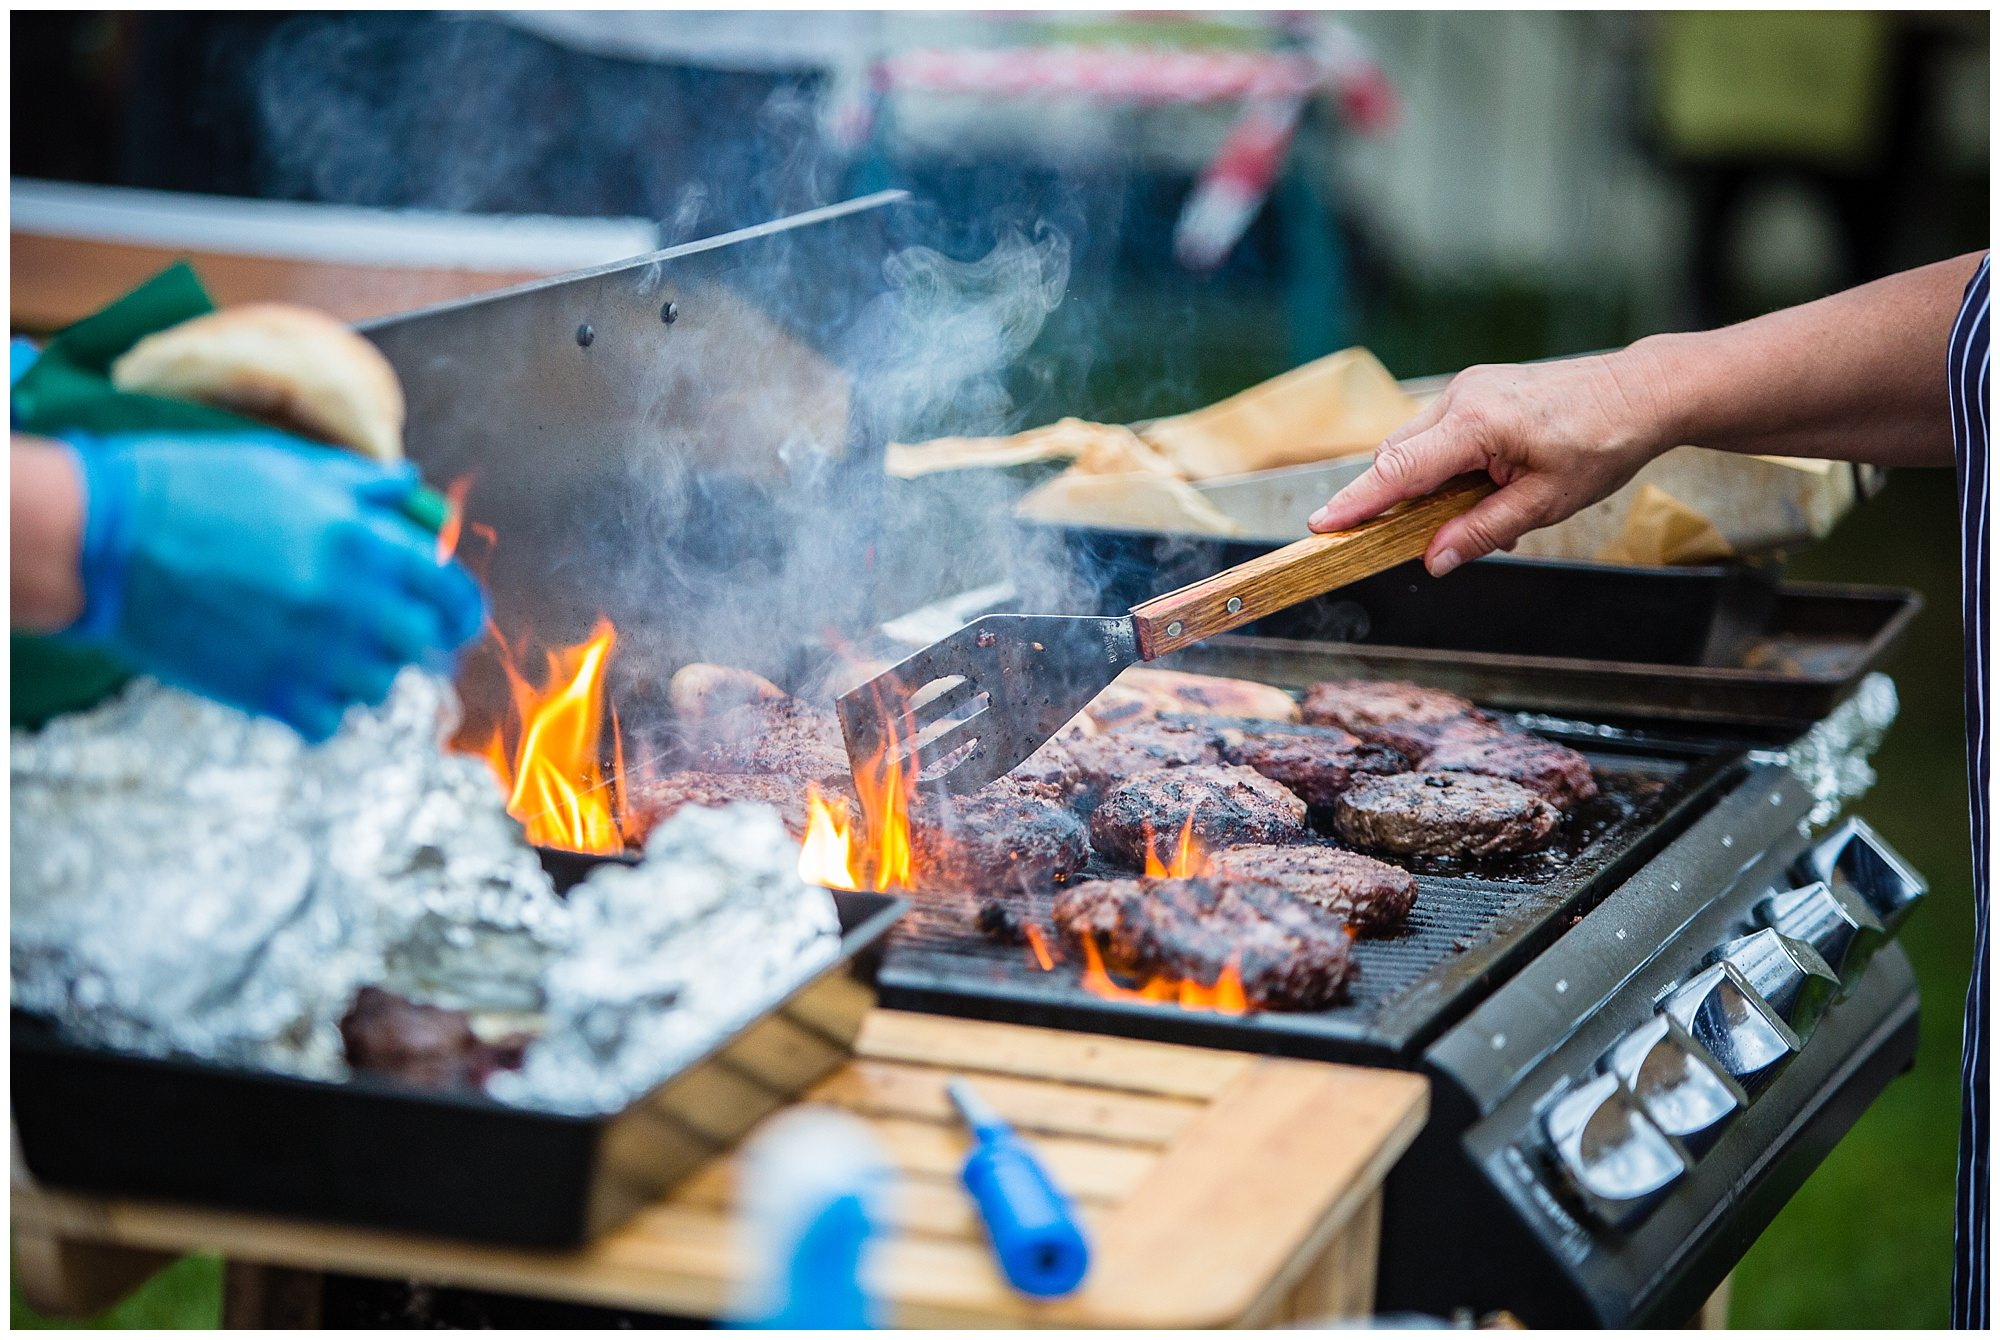 bbq post event for the runners - charlotte giddings phtotography